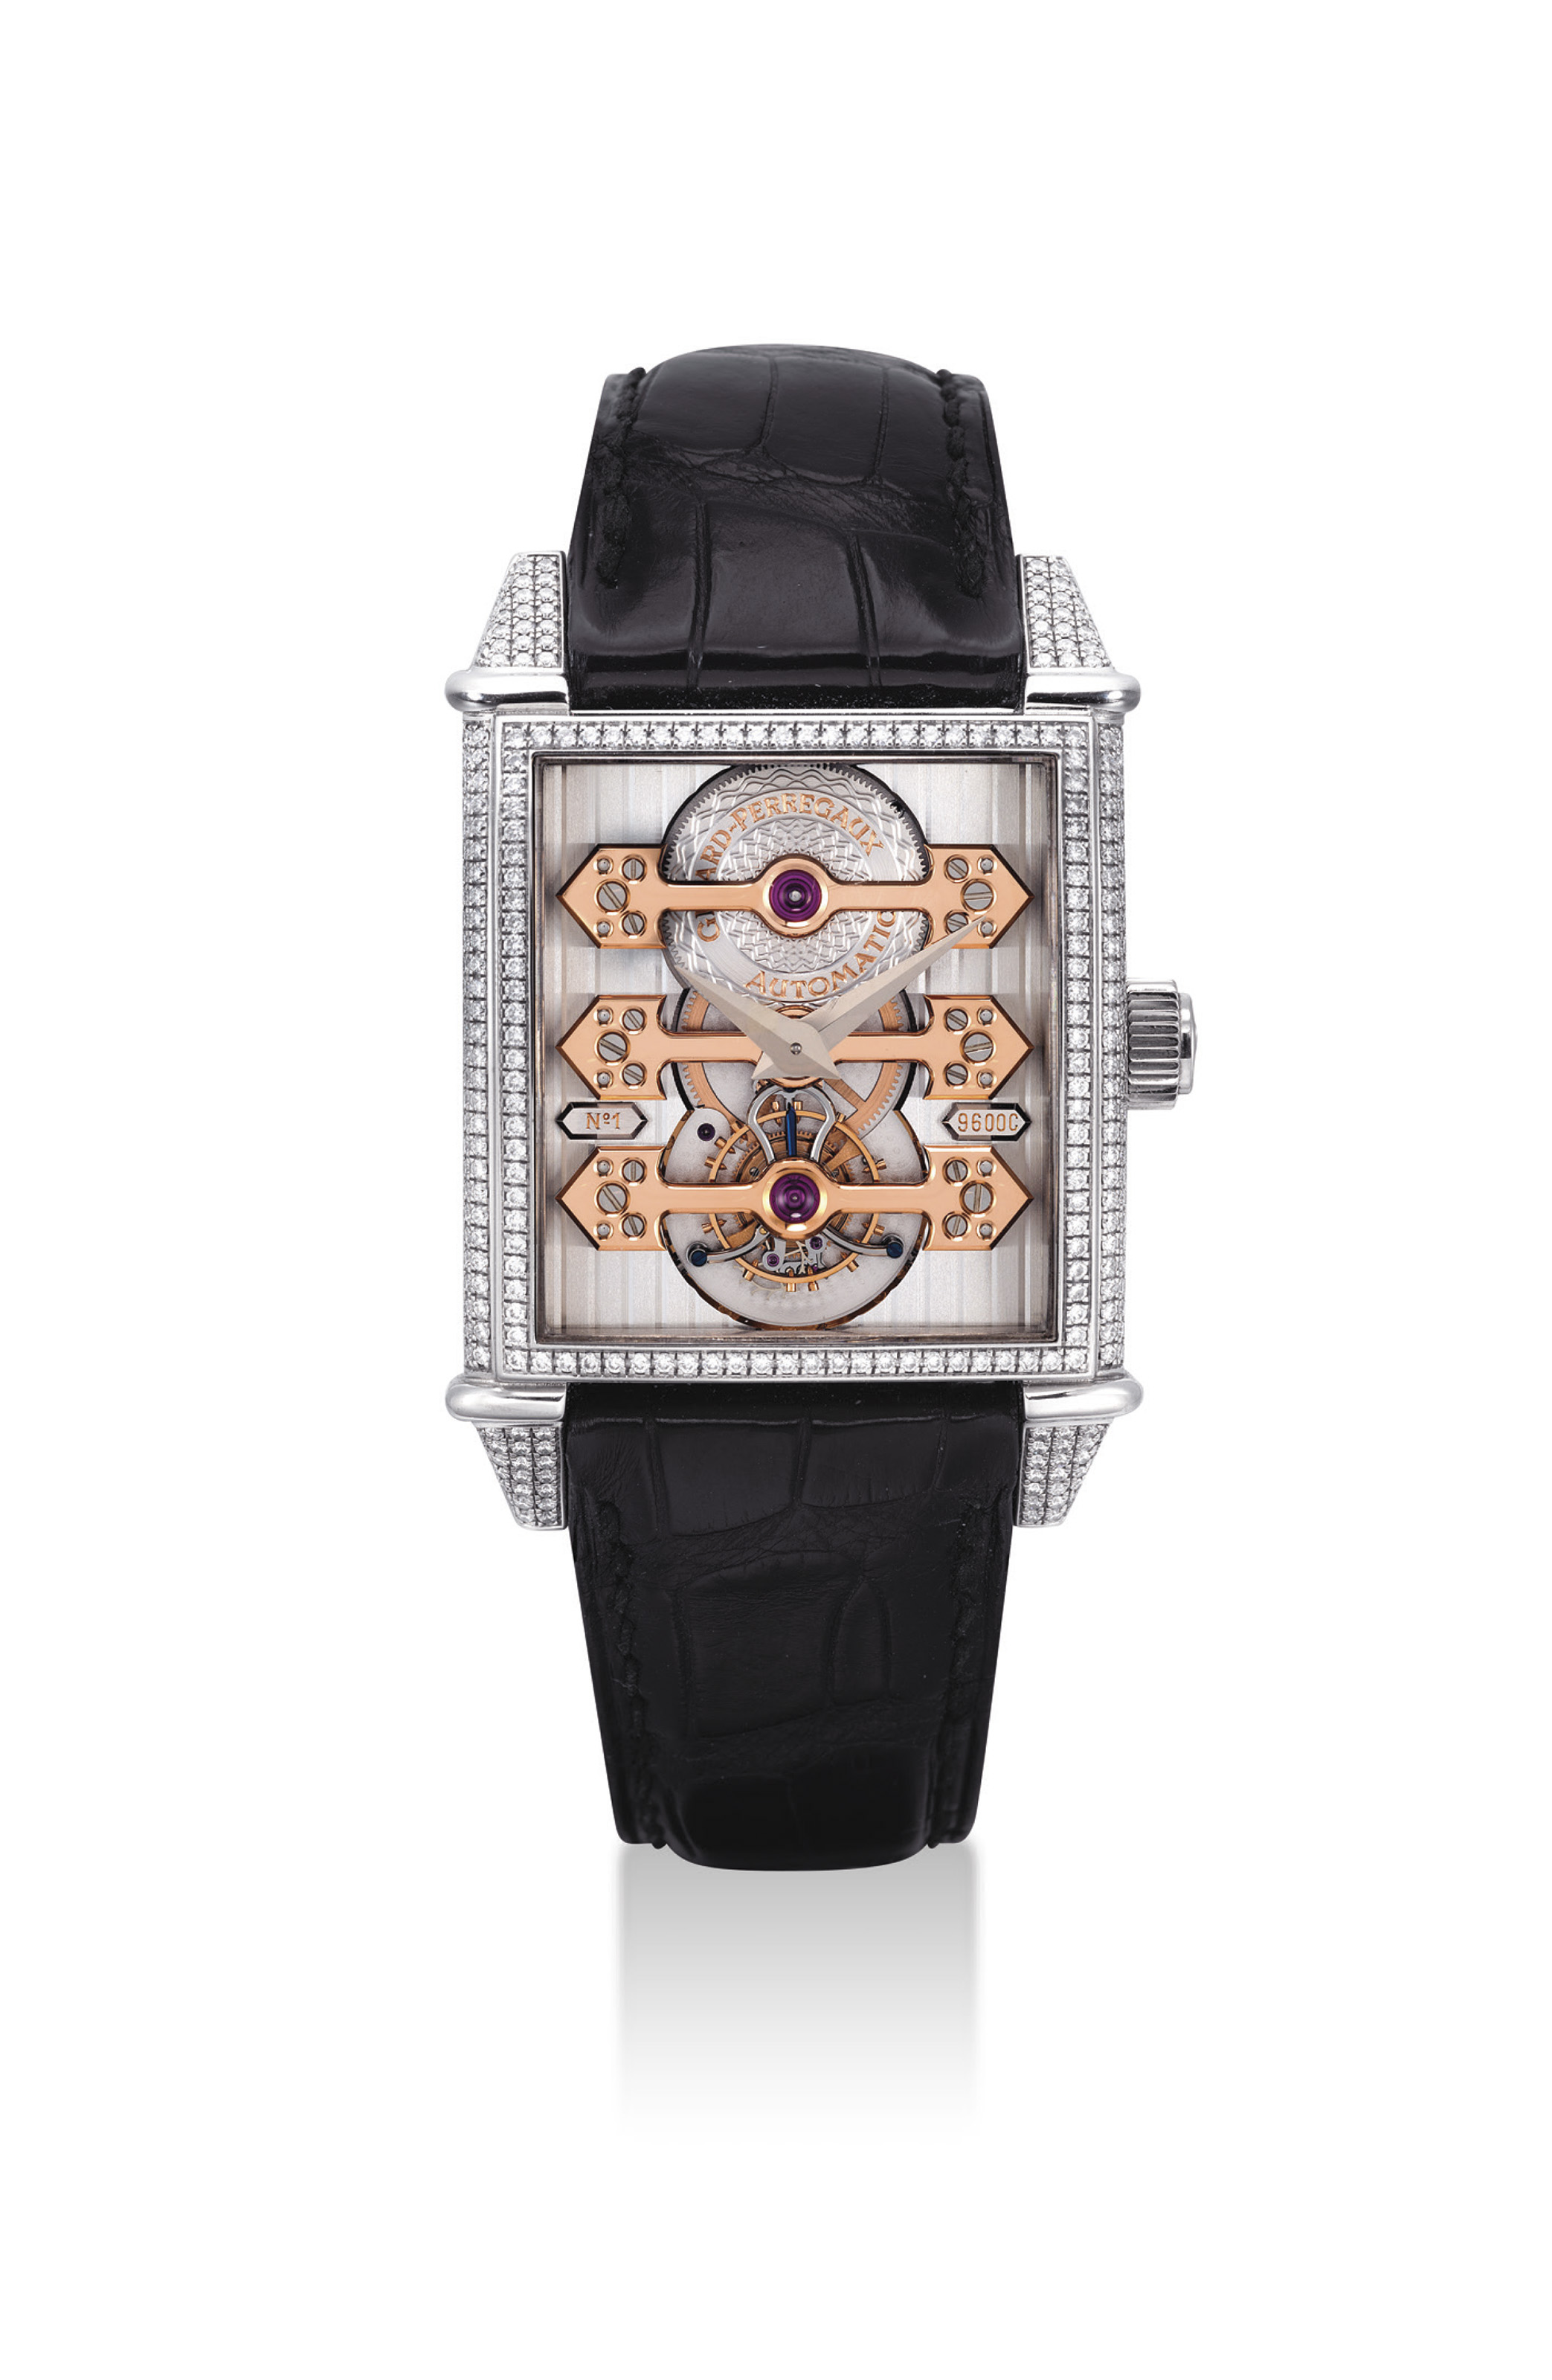 GIRARD-PERREGAUX. A VERY FINE AND RARE 18K WHITE GOLD AND DIAMOND-SET RECTANGULAR AUTOMATIC THREE GOLD BRIDGES TOURBILLON WRISTWATCH